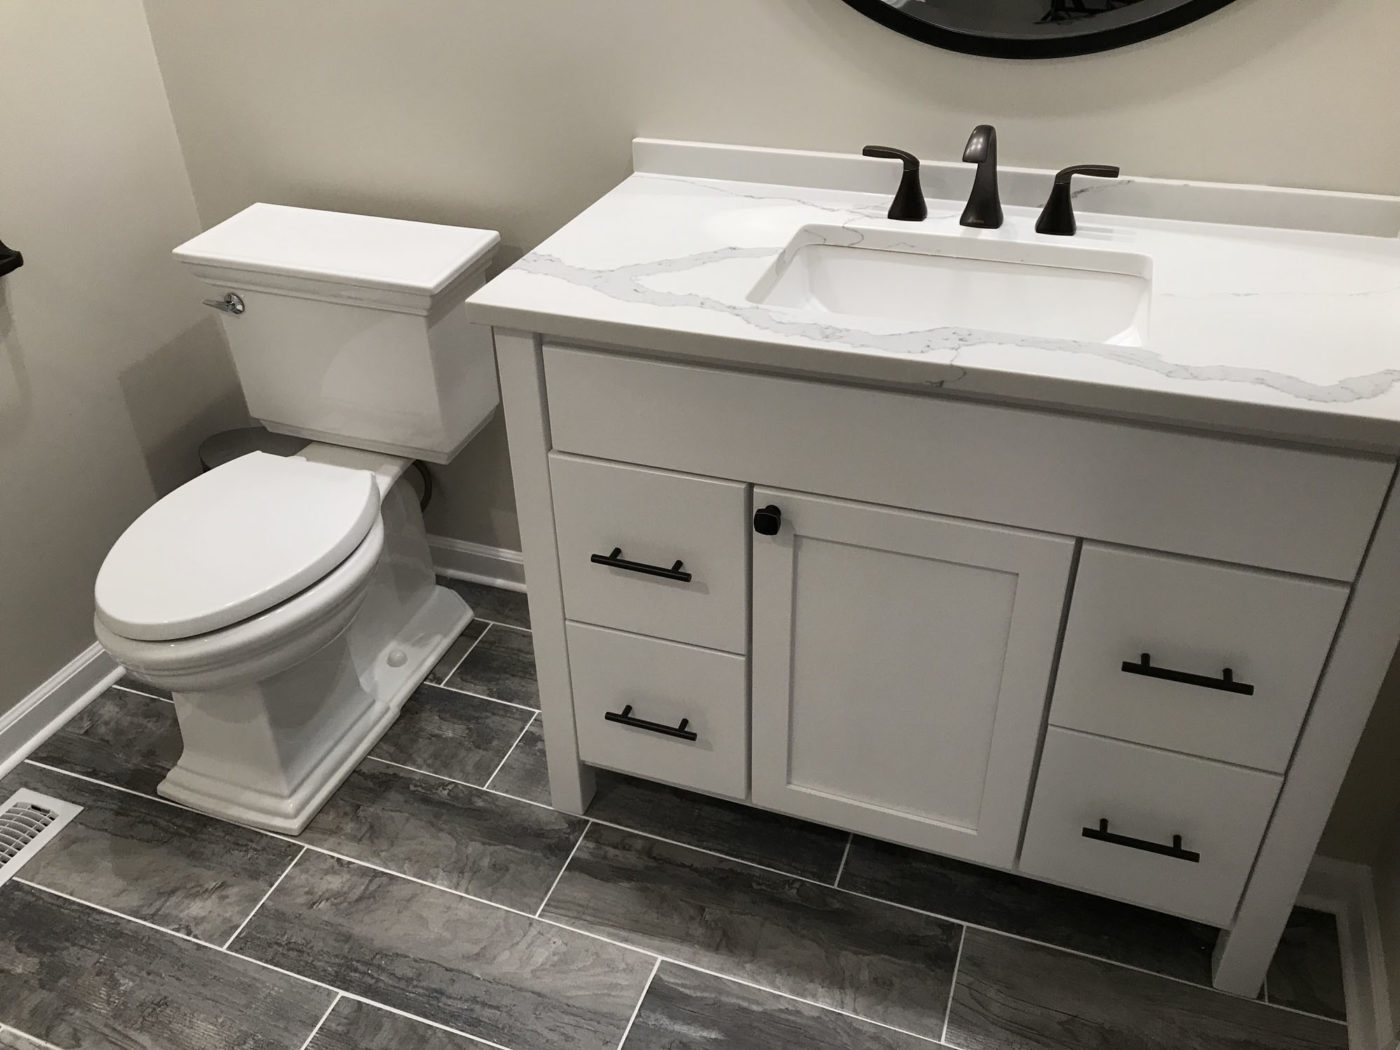 Bathroom Remodeling in Hinsdale - new flooring white and black cabinets and sink